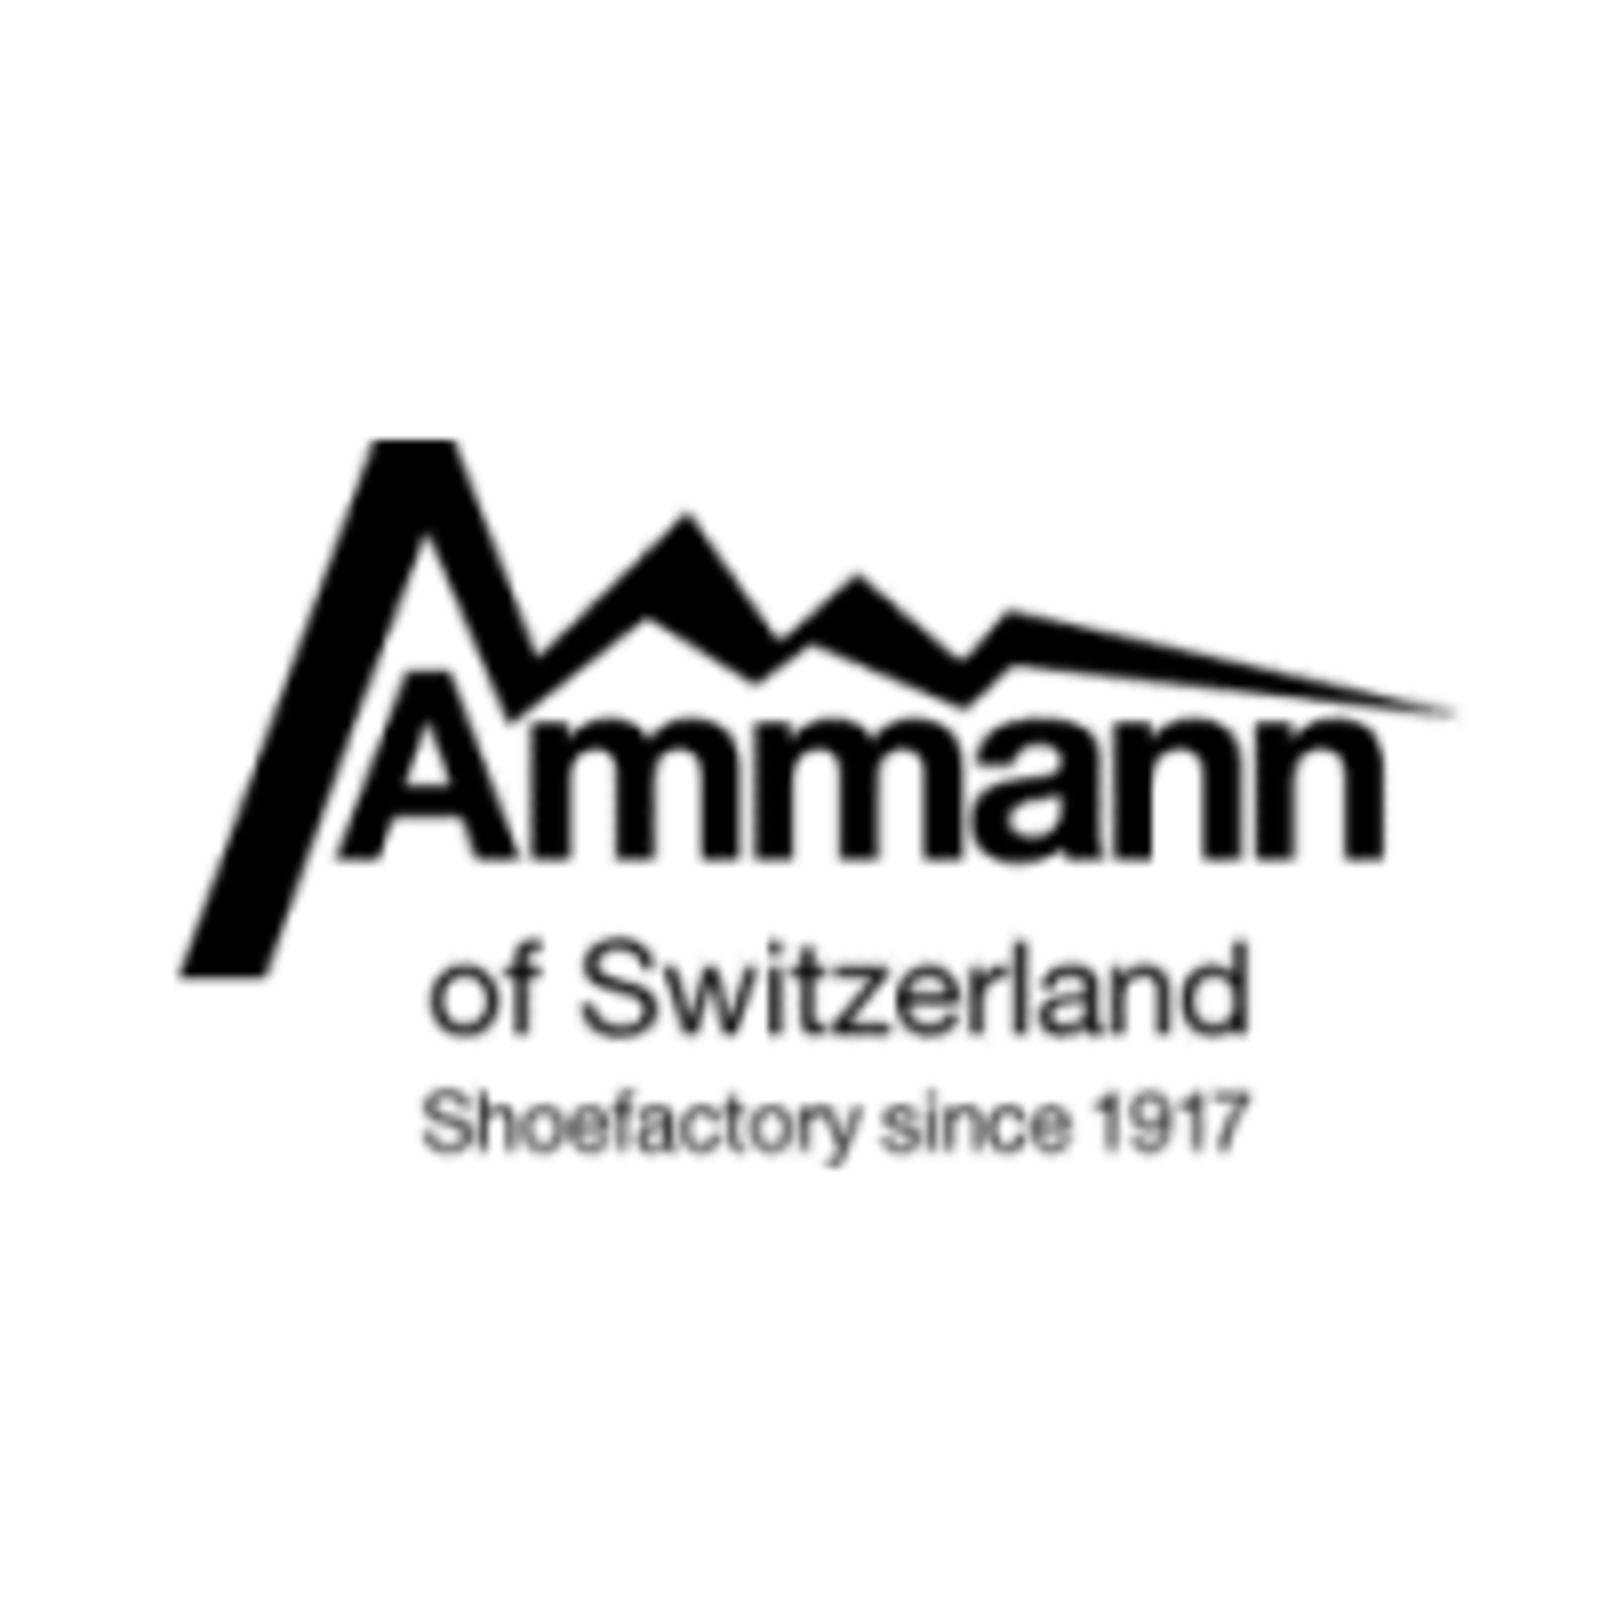 Ammann of Switzerland